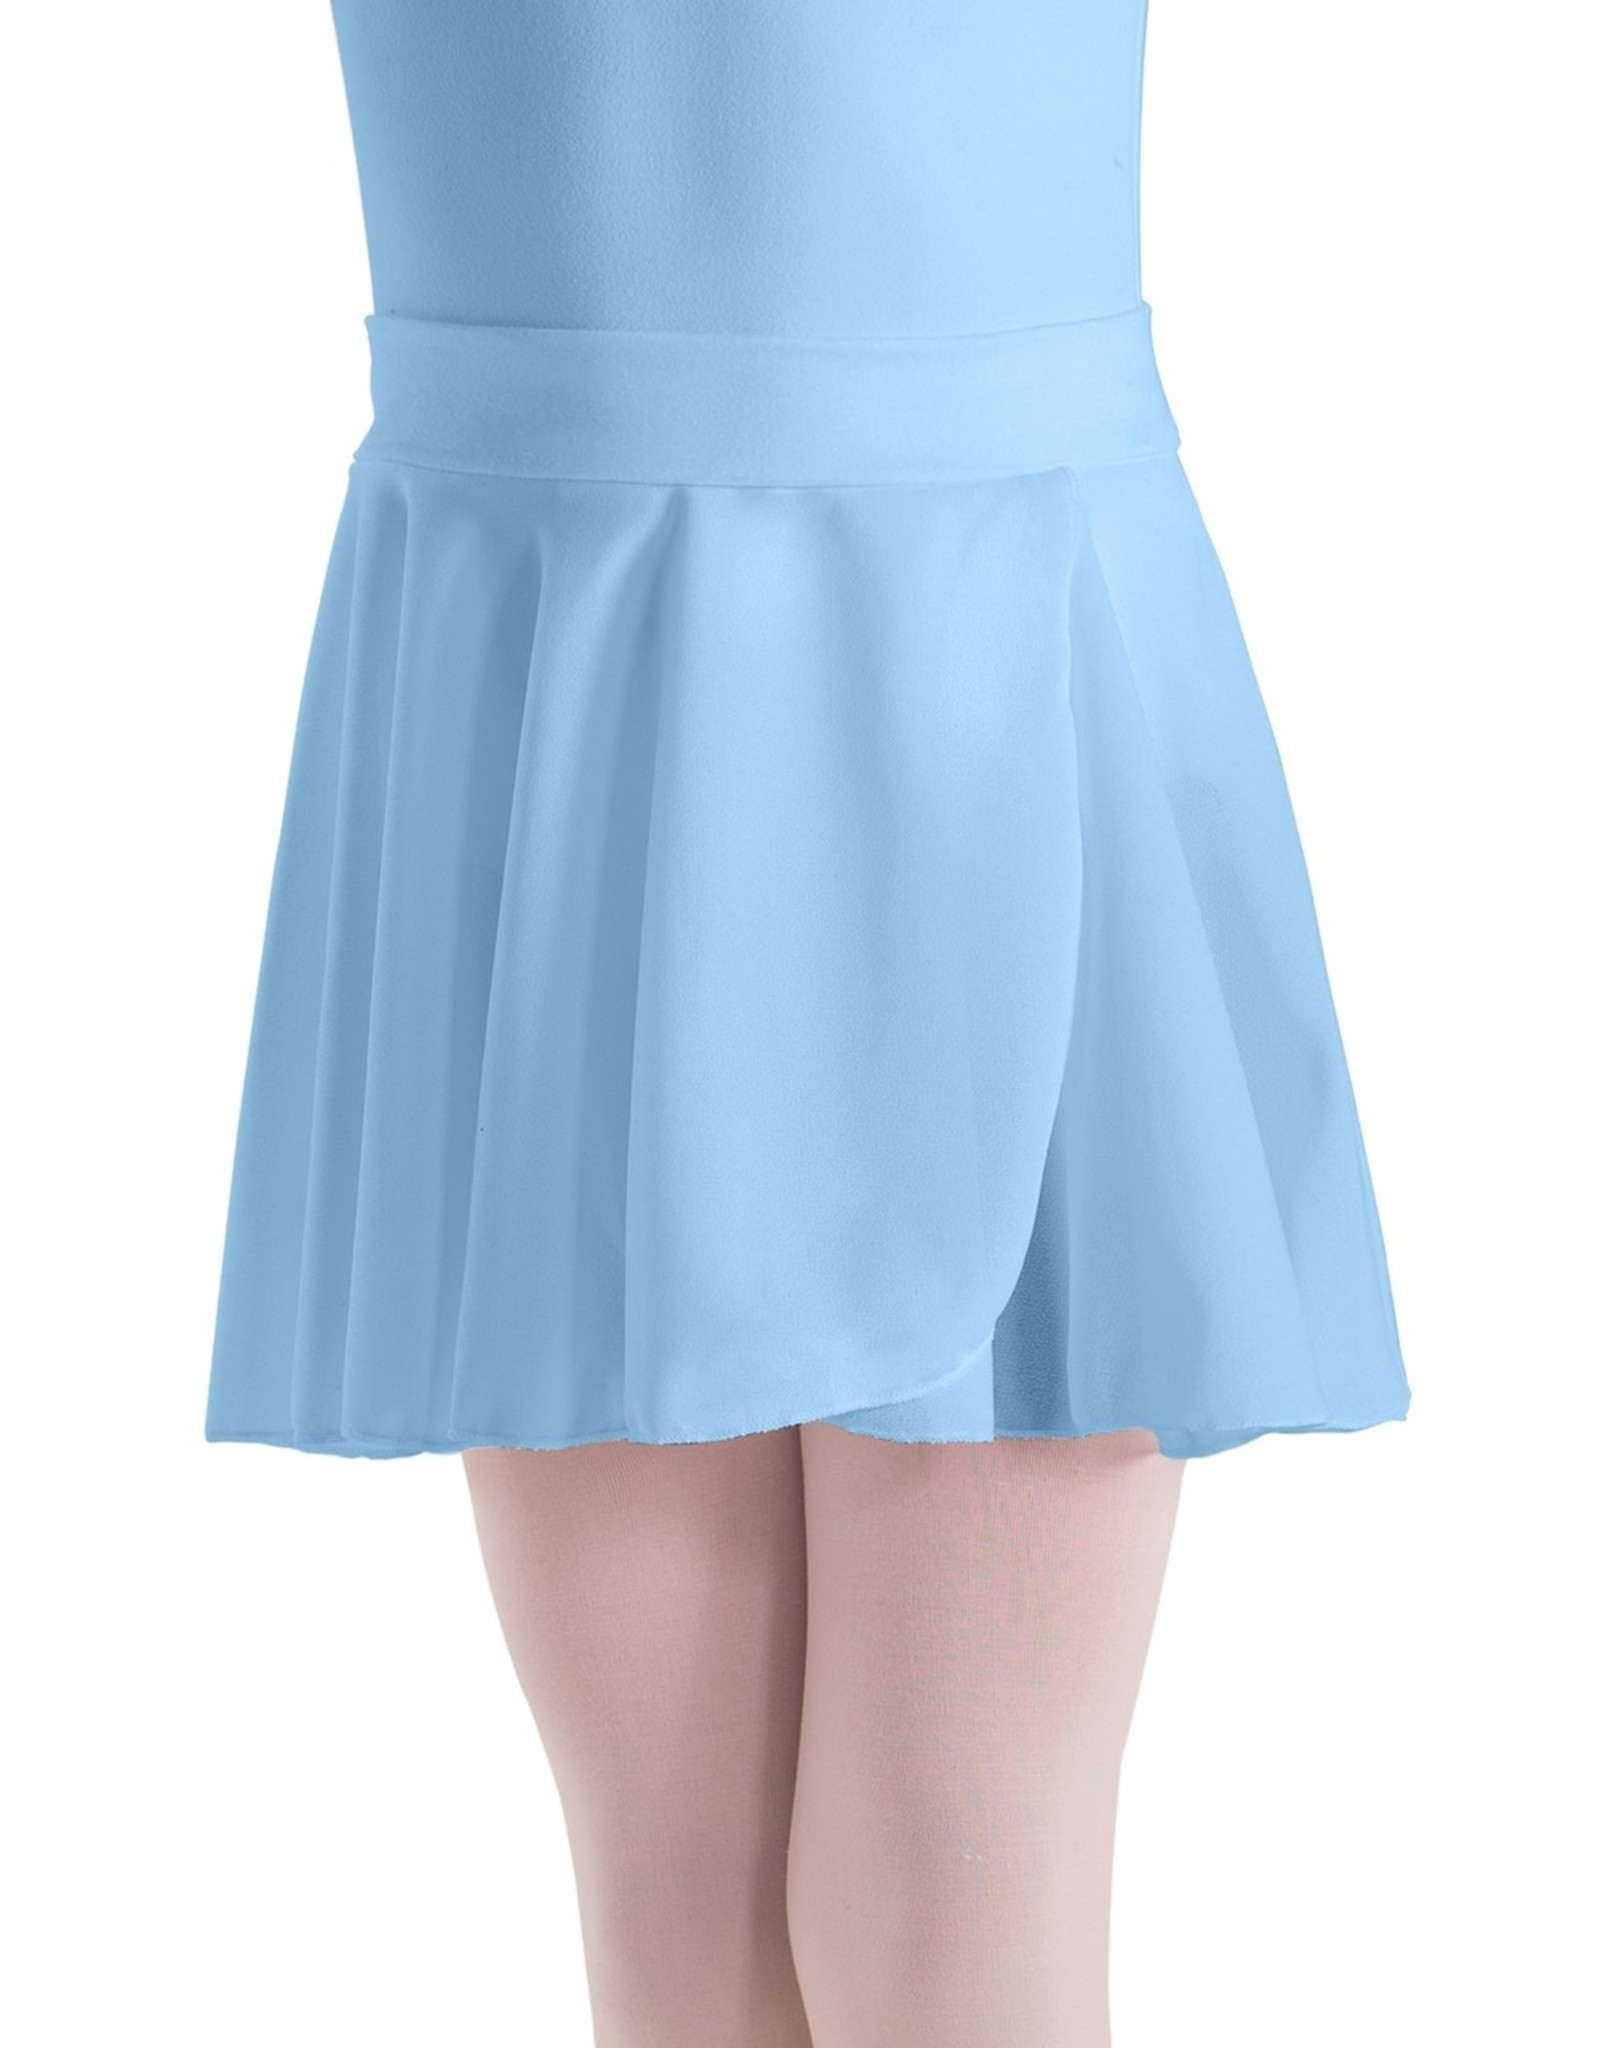 MOTIONWEAR PULL-ON CREPE SKIRT COTTON WAISTBAND (1011C)